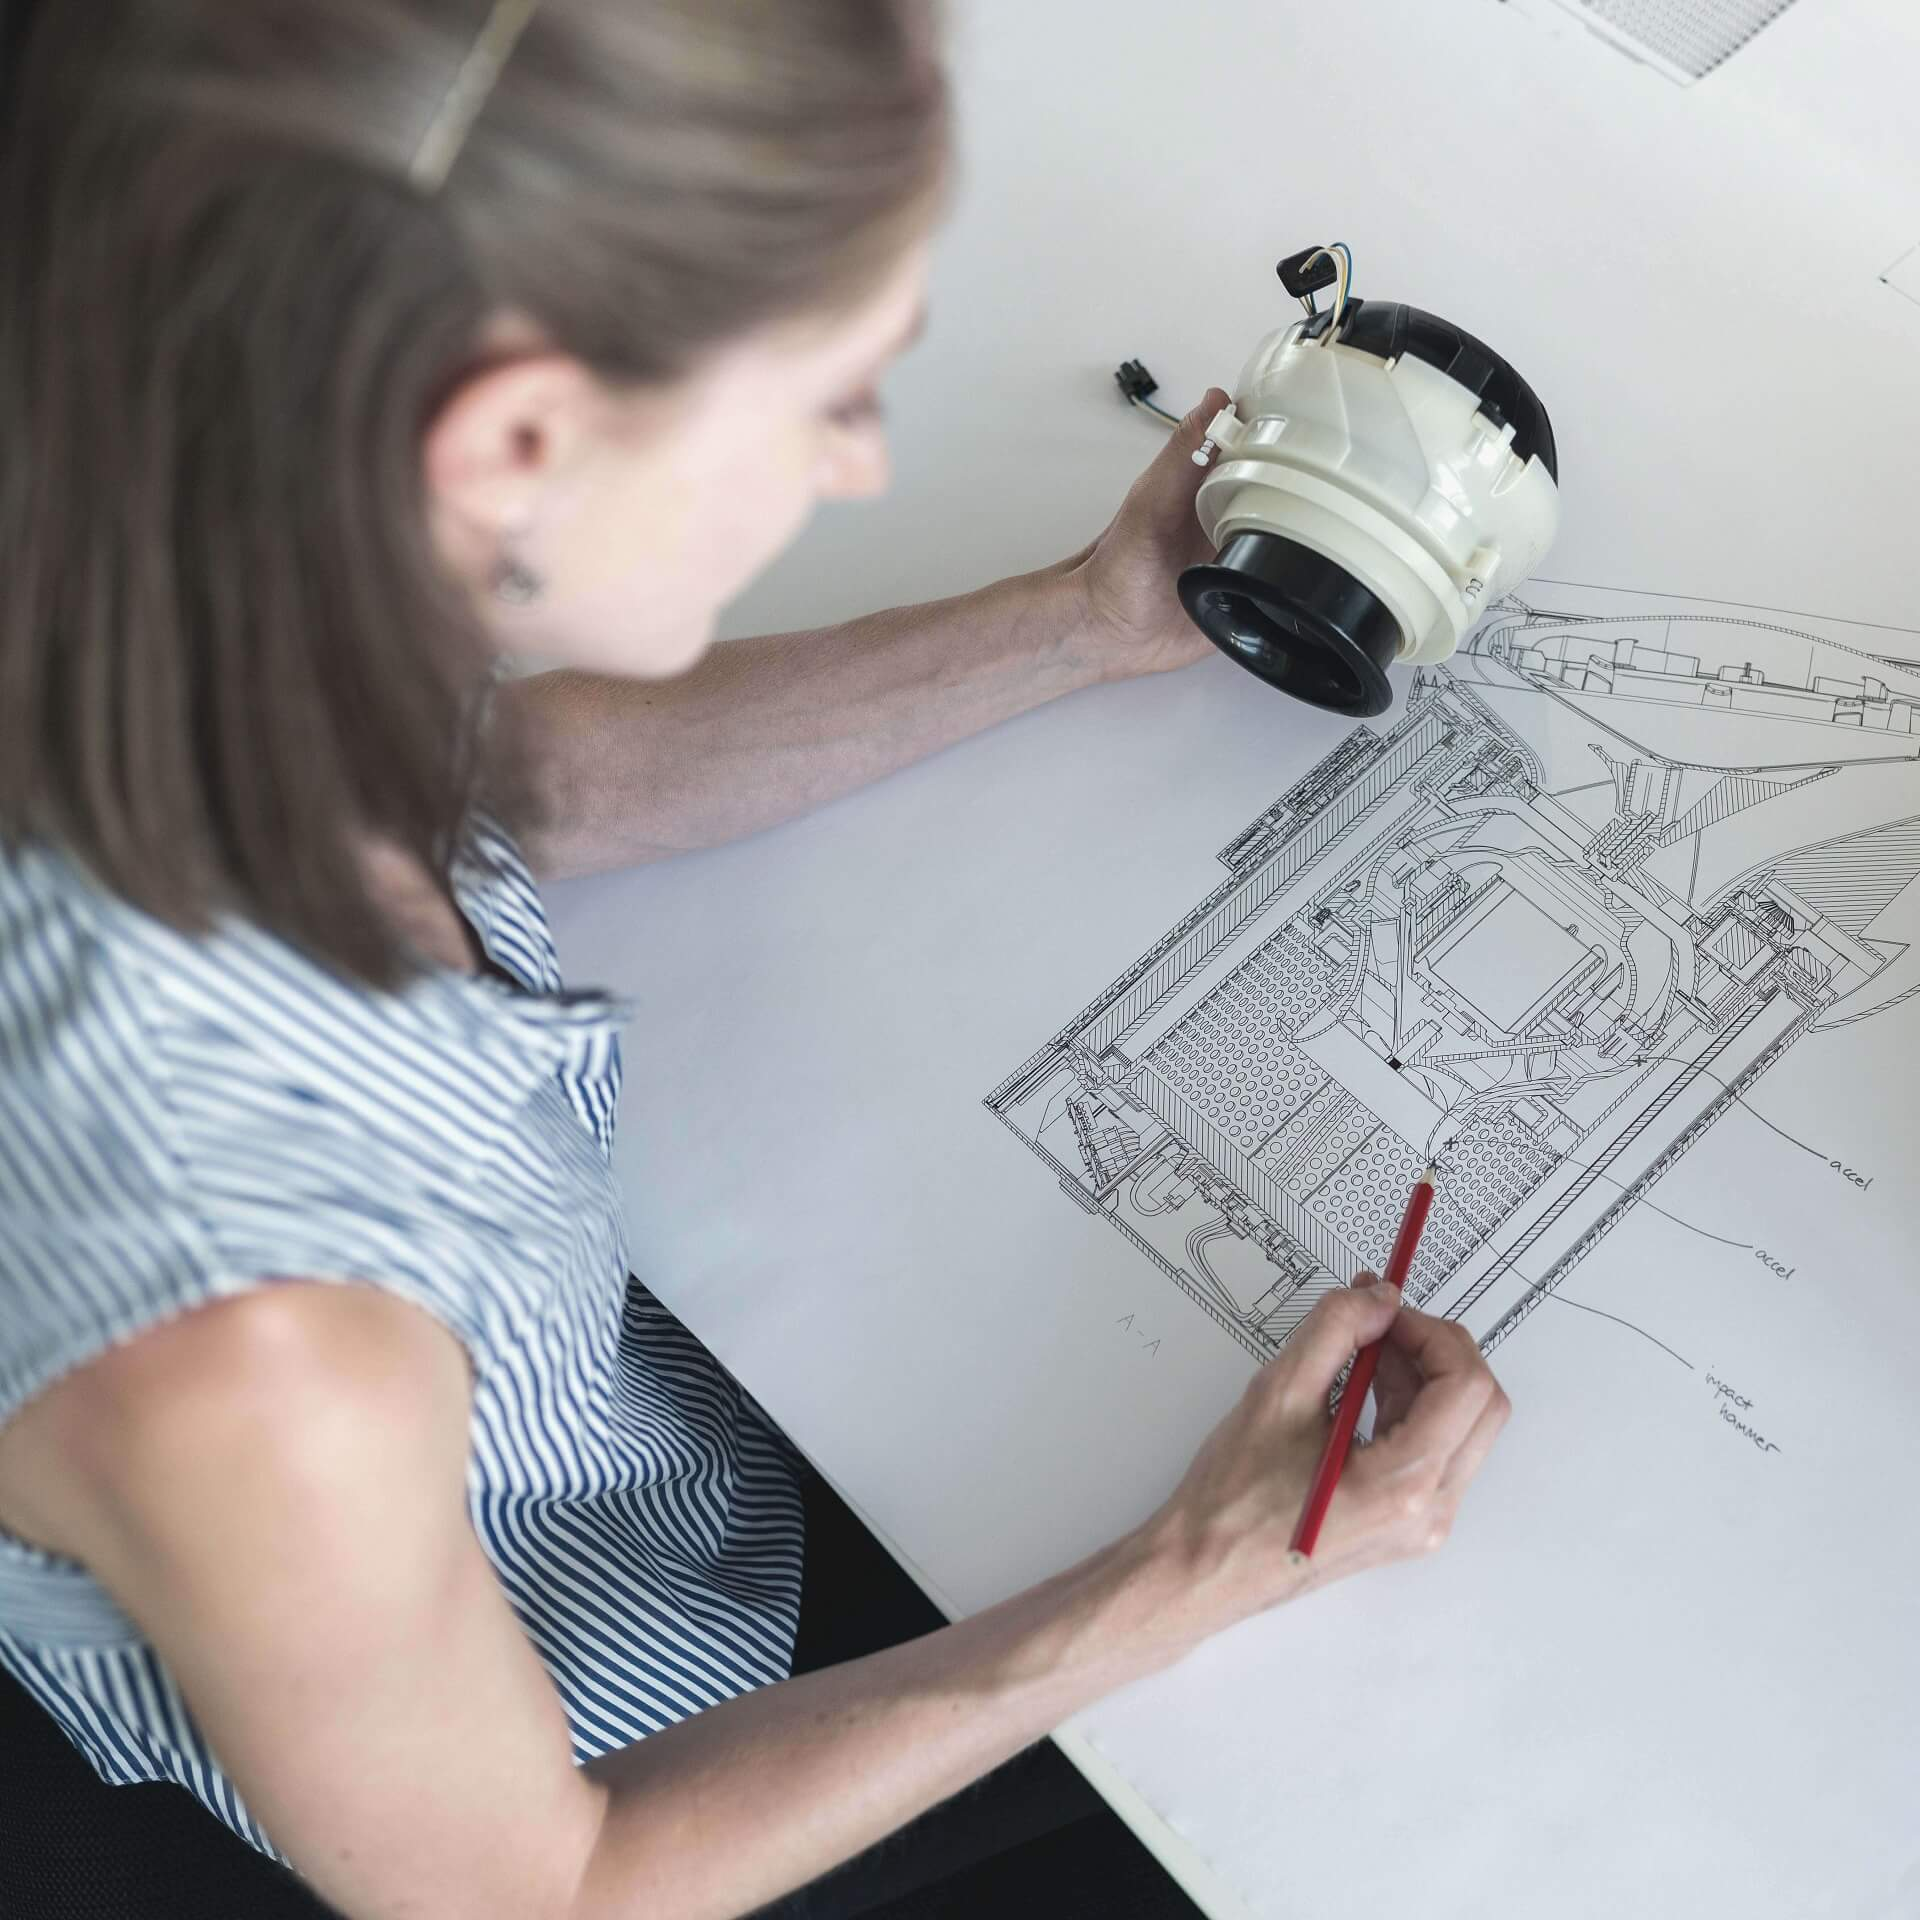 Brand Building: Business woman looking over blueprints